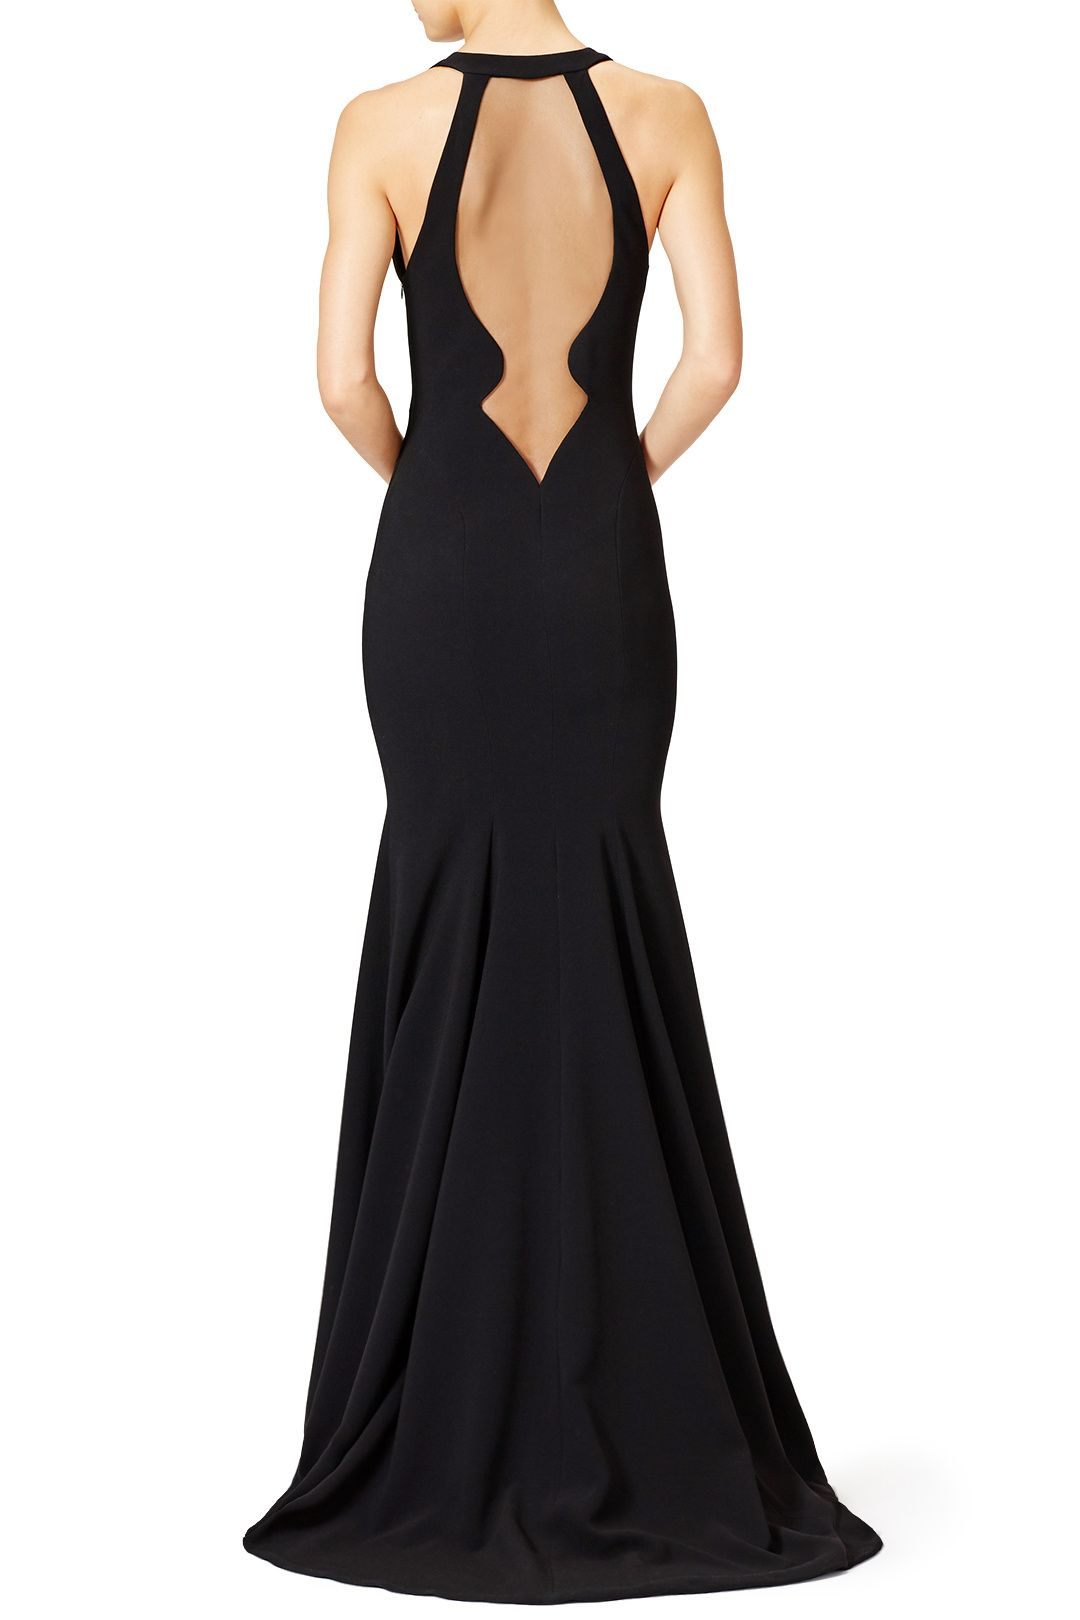 5408dfb4741 Black Matte Dress by Theia. I get to wear this to a wedding this weekend!!